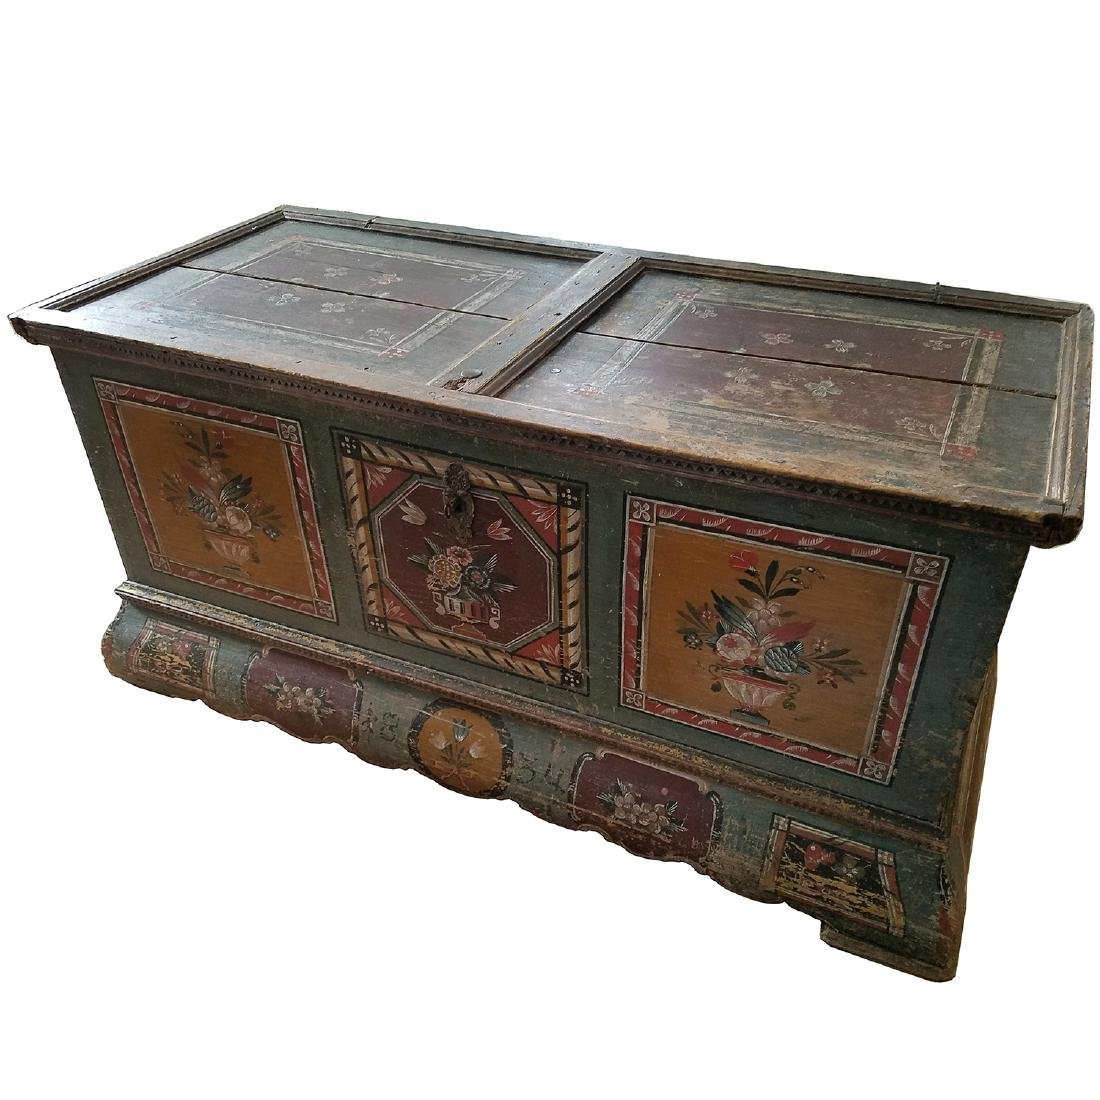 ANTIQUE GERMAN PAINTED DOWRY CHEST